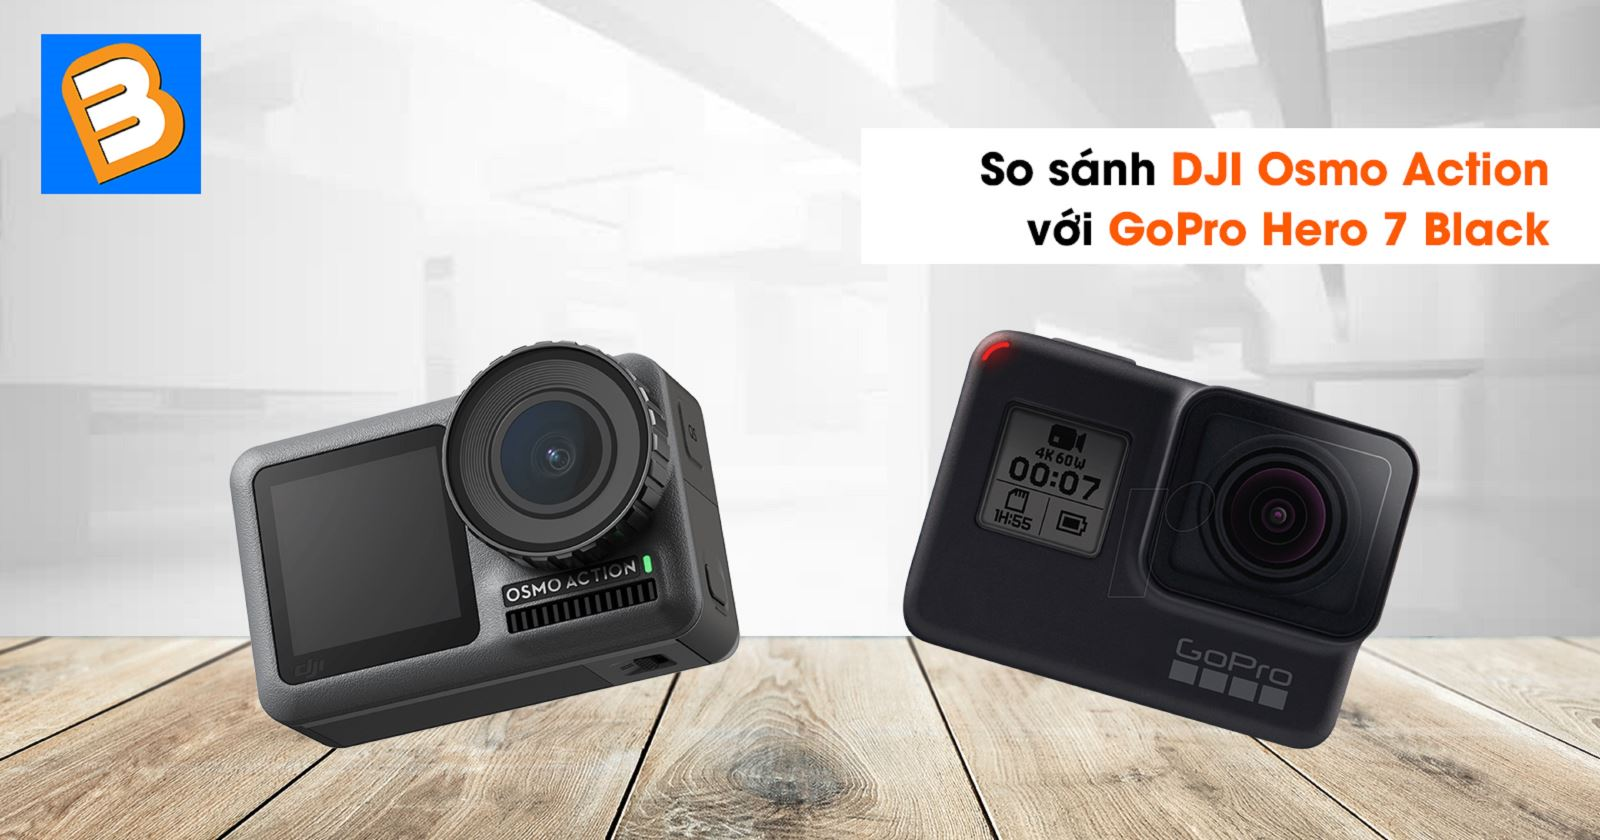 So sánh DJI Osmo Action với GoPro Hero 7 Black